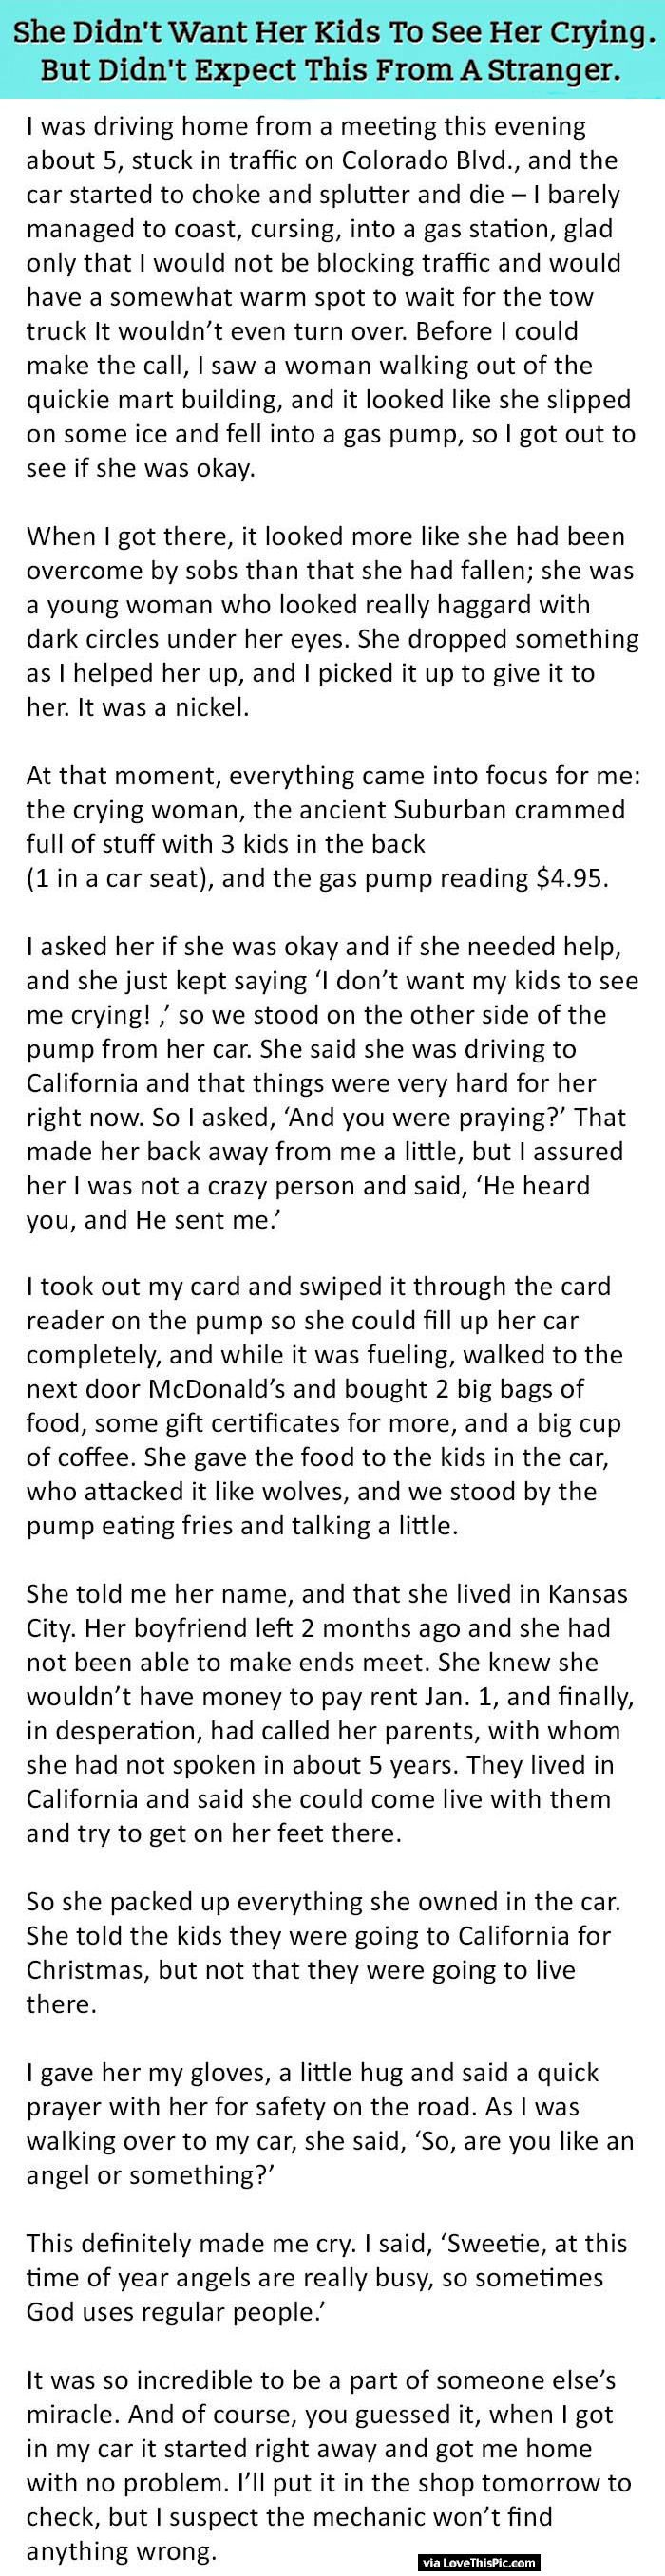 She Did Not Want Her Kids To See Her Crying But Never Expected This From A Stranger. moms kids people mom parents amazing story children parenting interesting facts stories heart warming good people